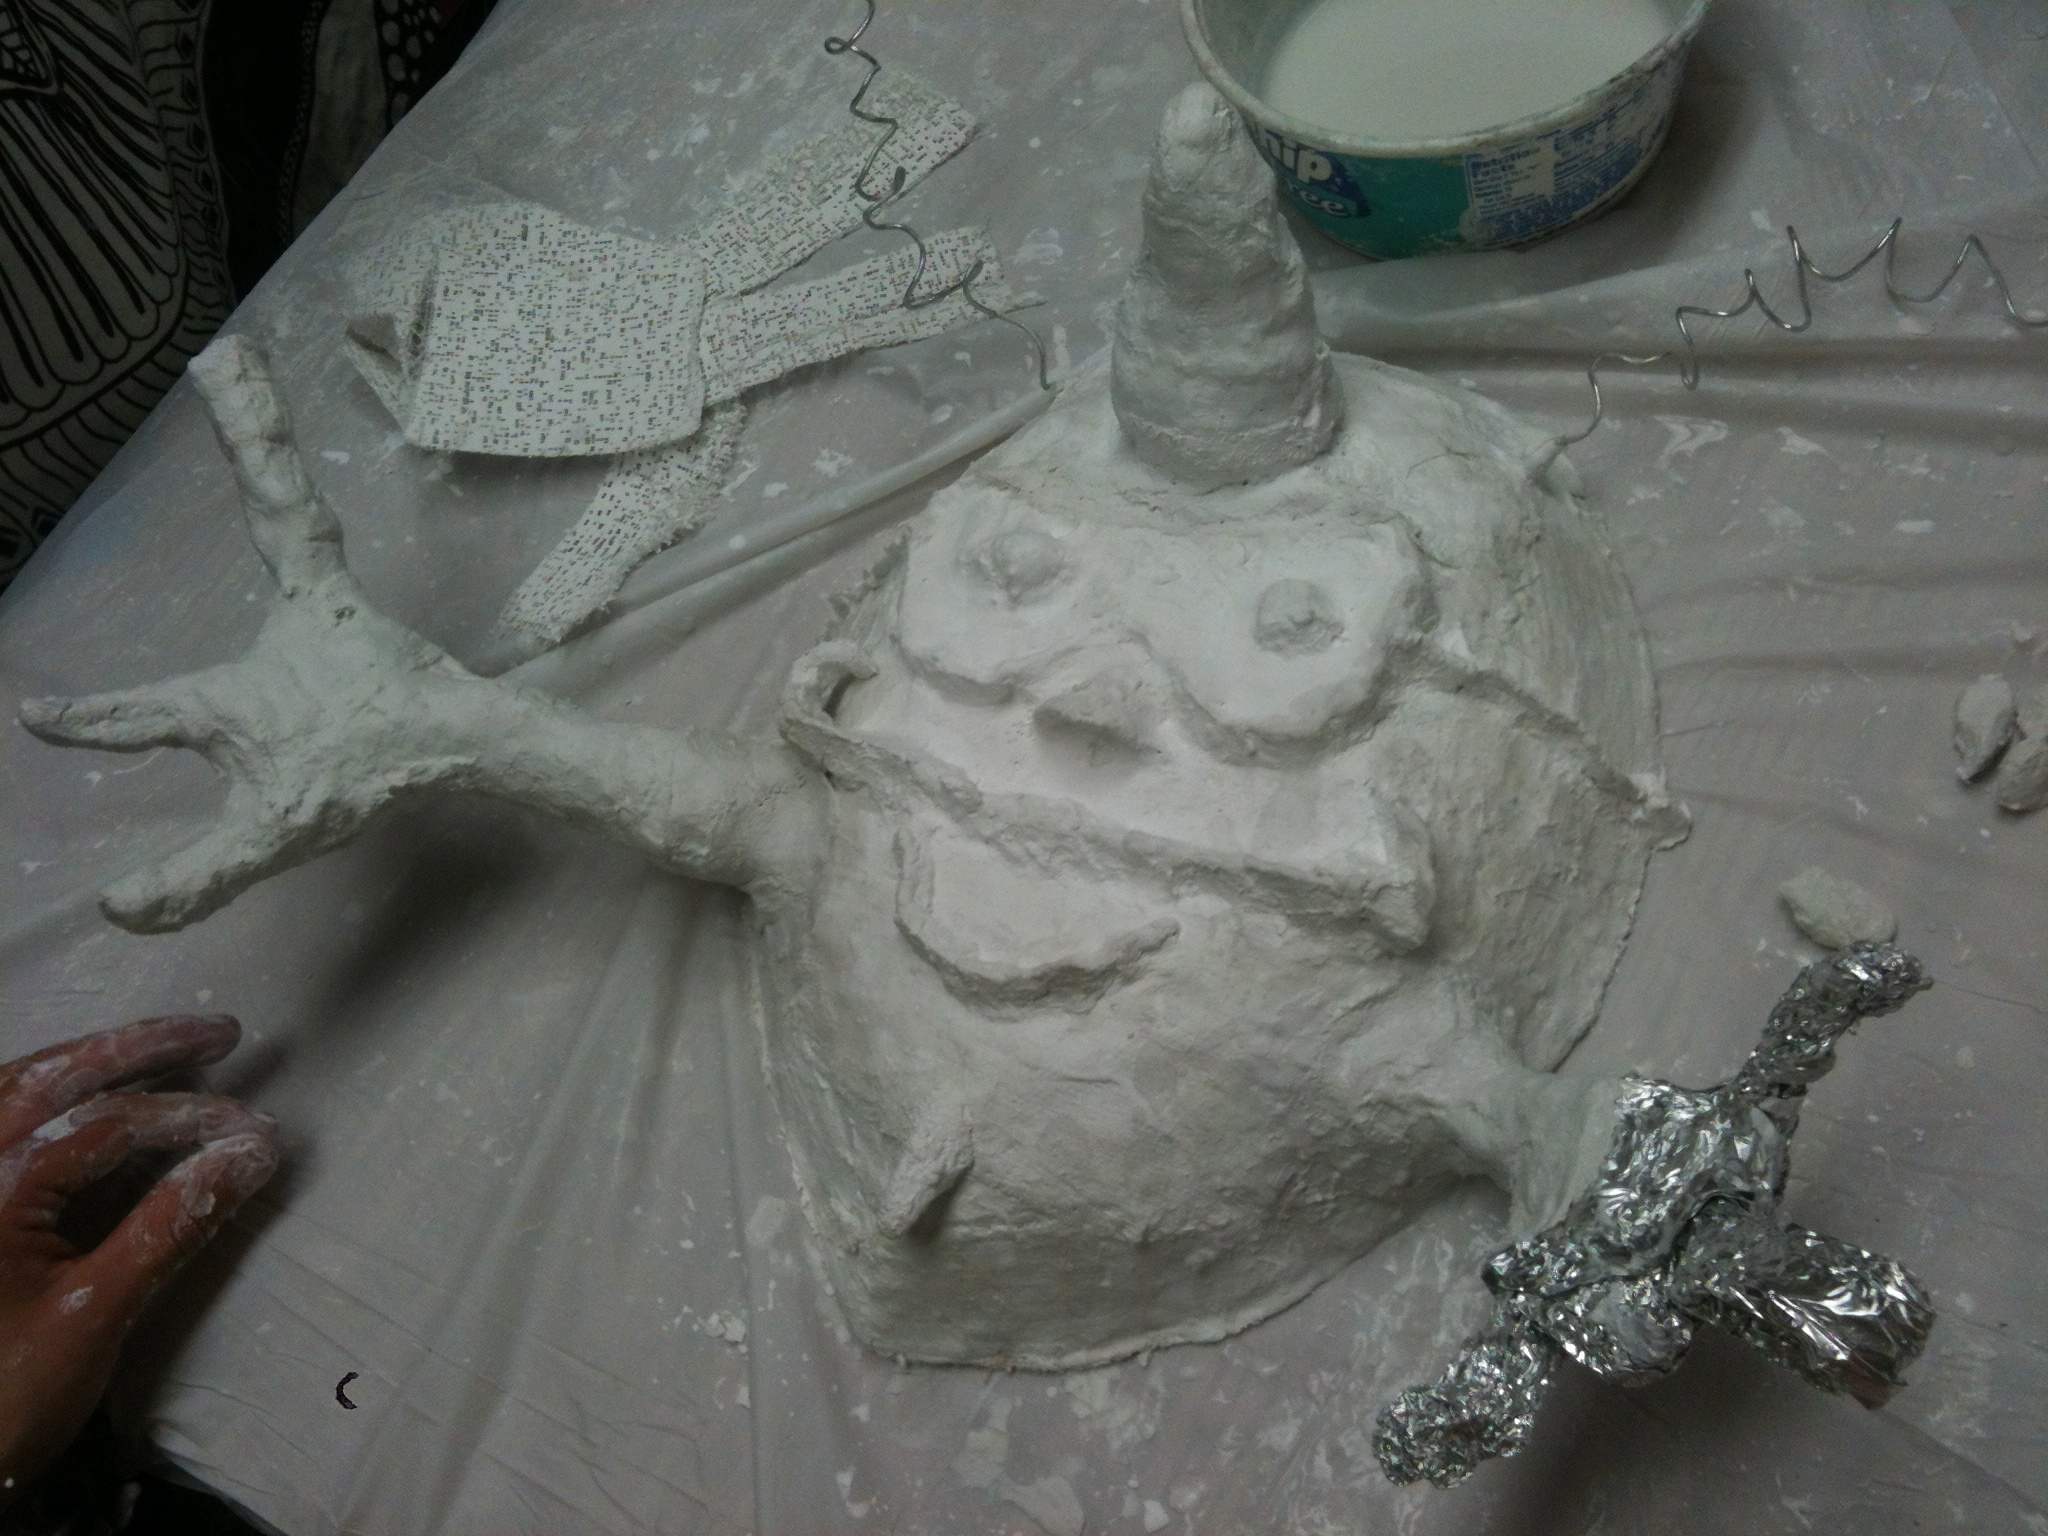 This mask uses foil as an armature. Student also added wire antennae.